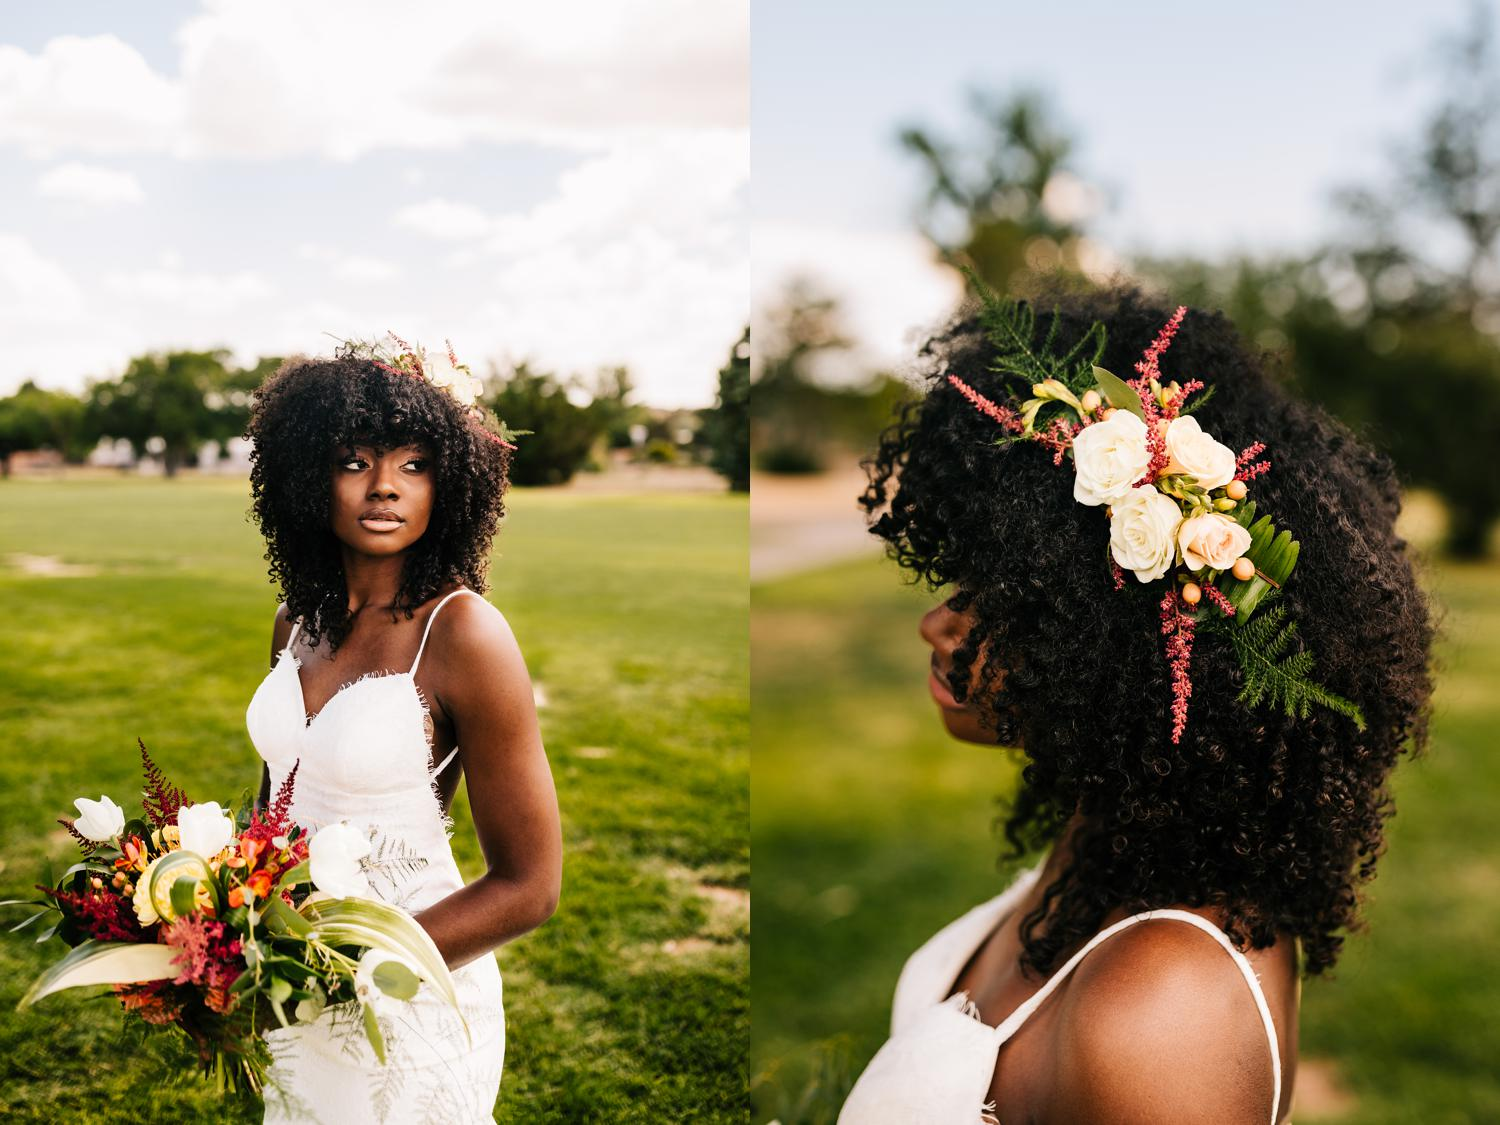 Hair ideas and accessory for black bride in New Mexico wedding